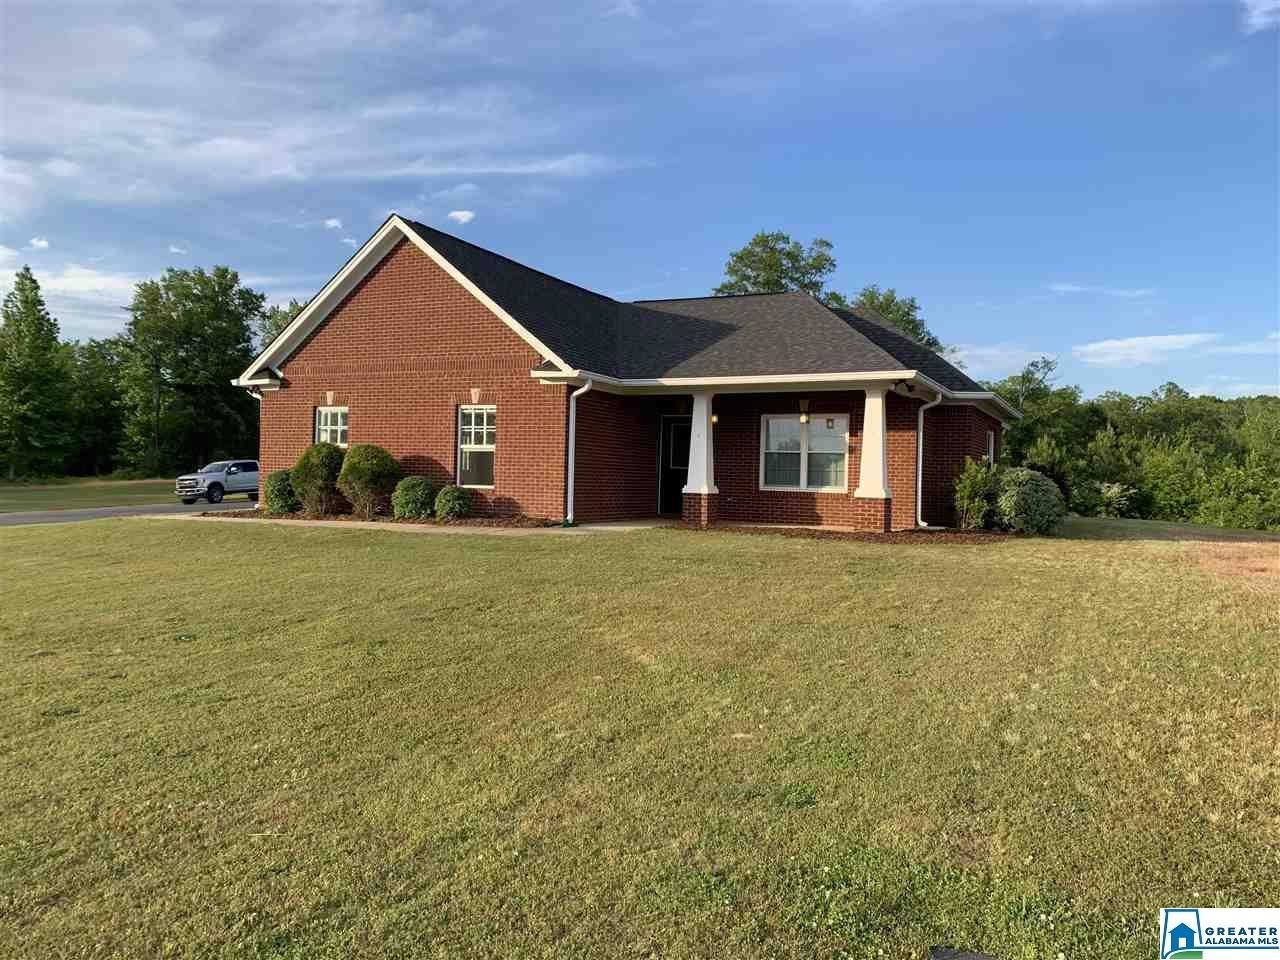 185 LAKE POINTE DR, Lincoln, AL 35096 - MLS#: 883128